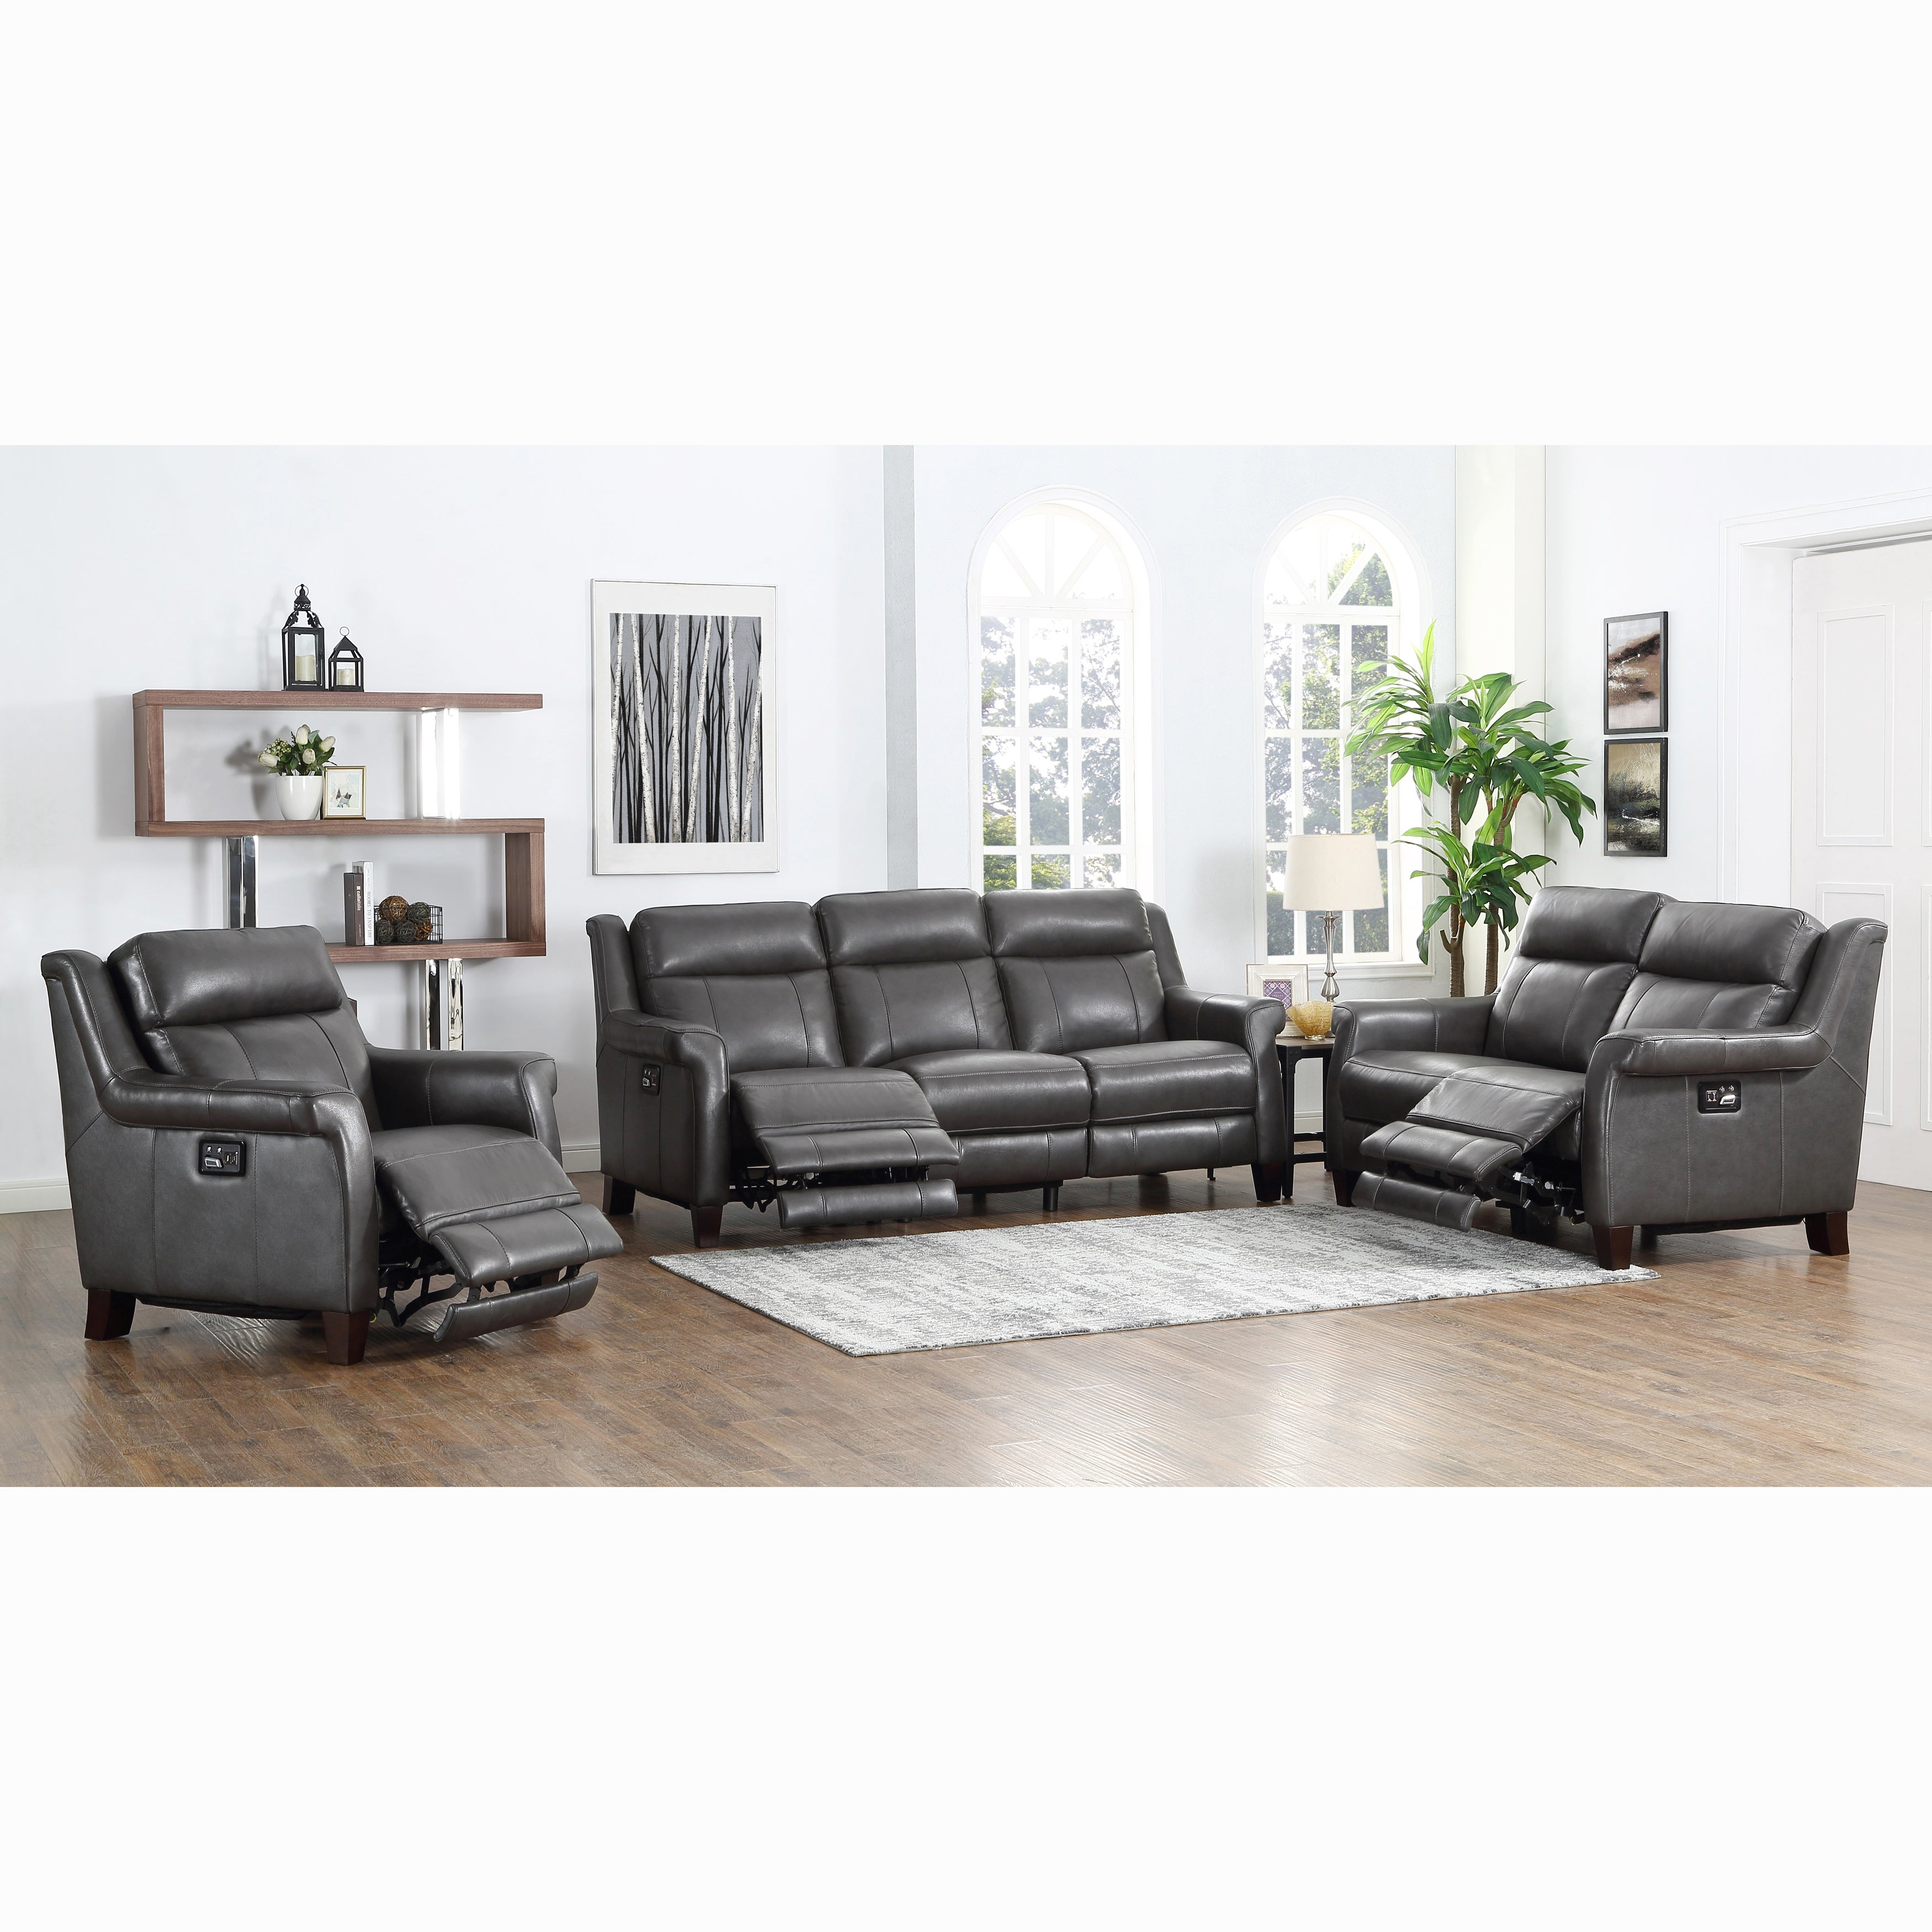 Alex Grey Top Grain Leather Power Reclining Sofa, Loveseat and Chair